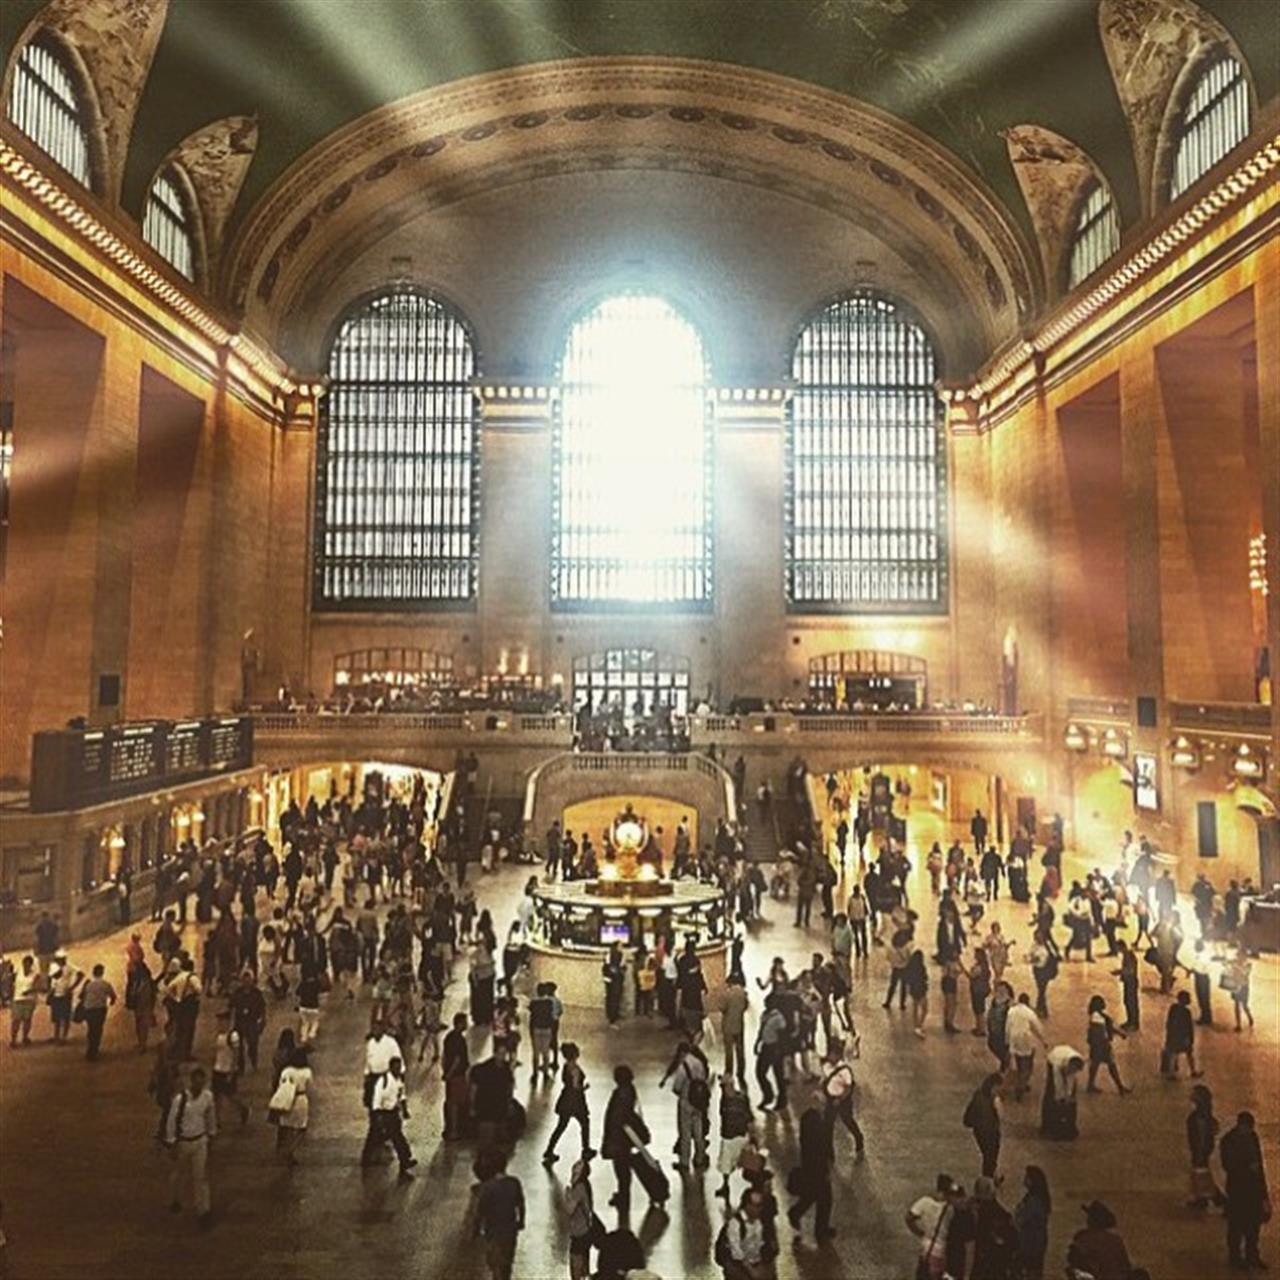 All aboard #GrandCentralStation. Next stop, #4thofJuly weekend! (Photo from Stribling broker @elnjoy26)